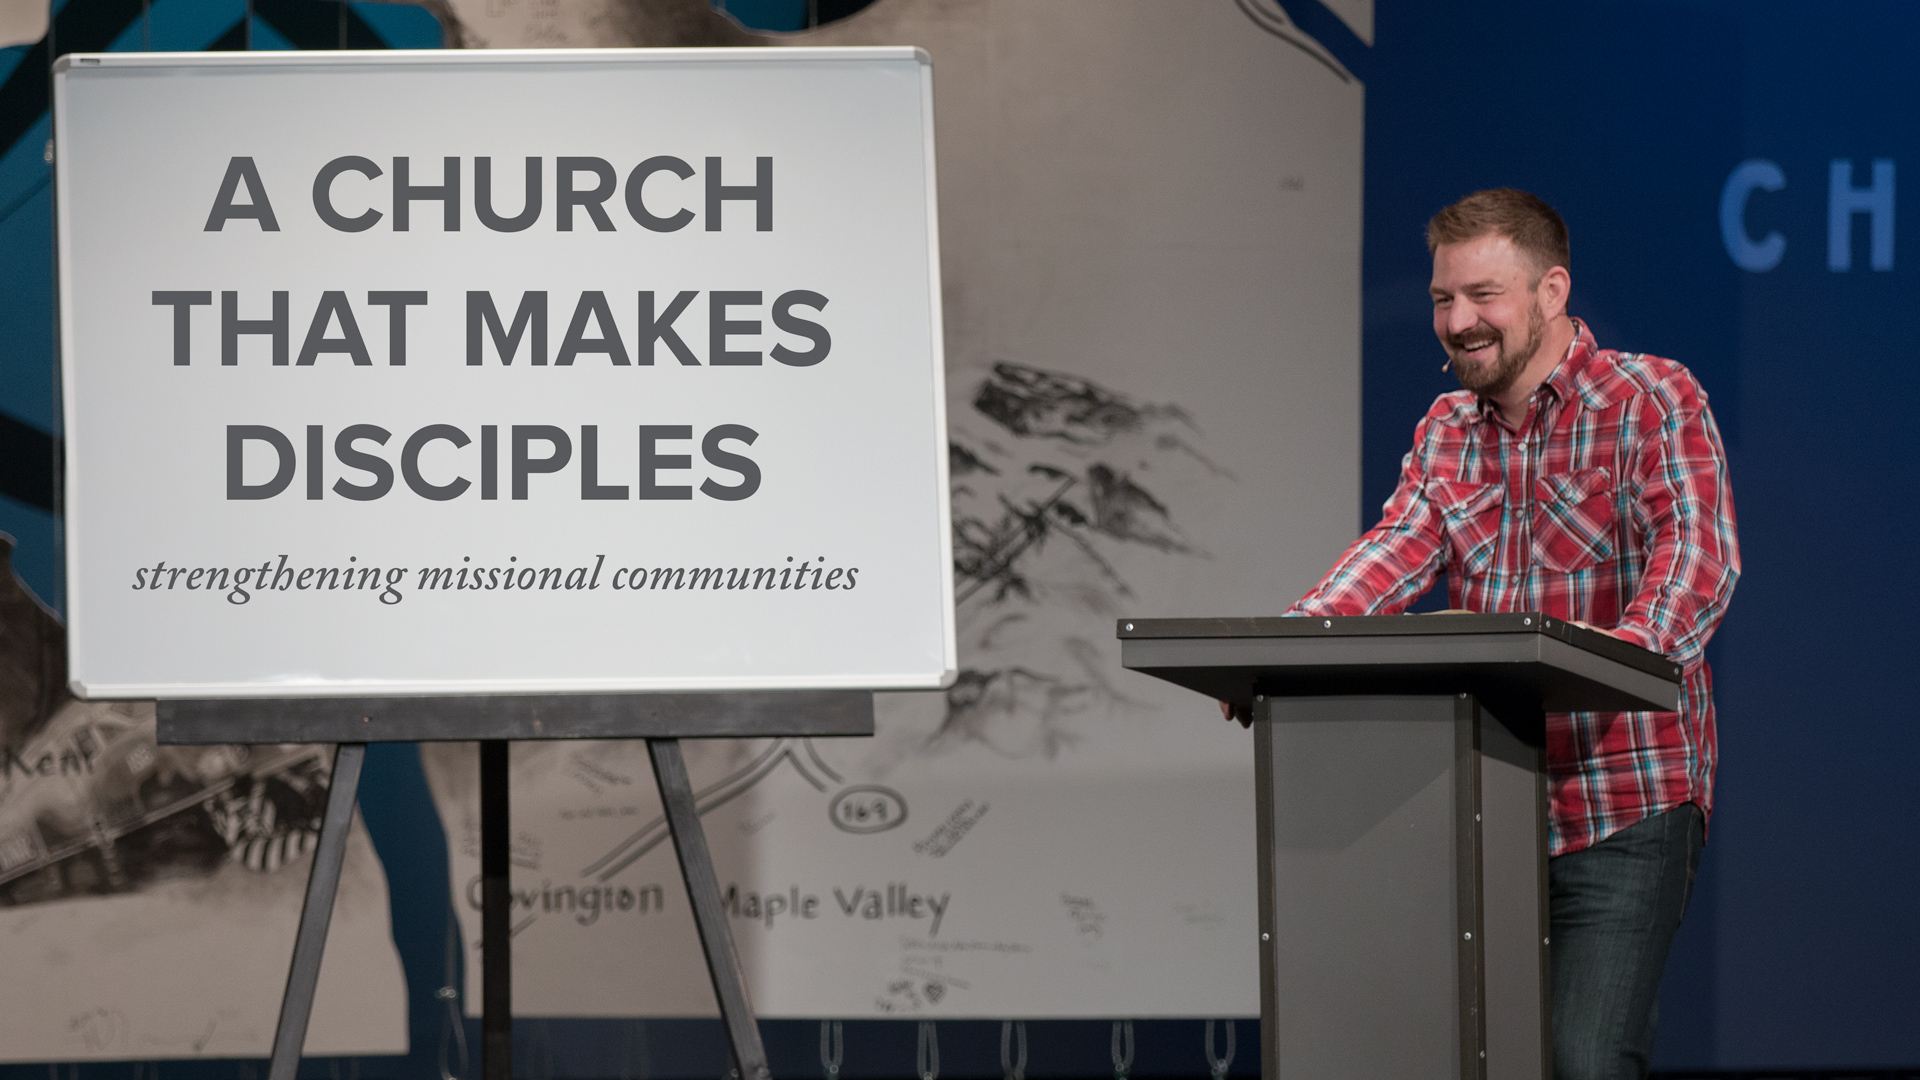 A Church That Makes Disciples